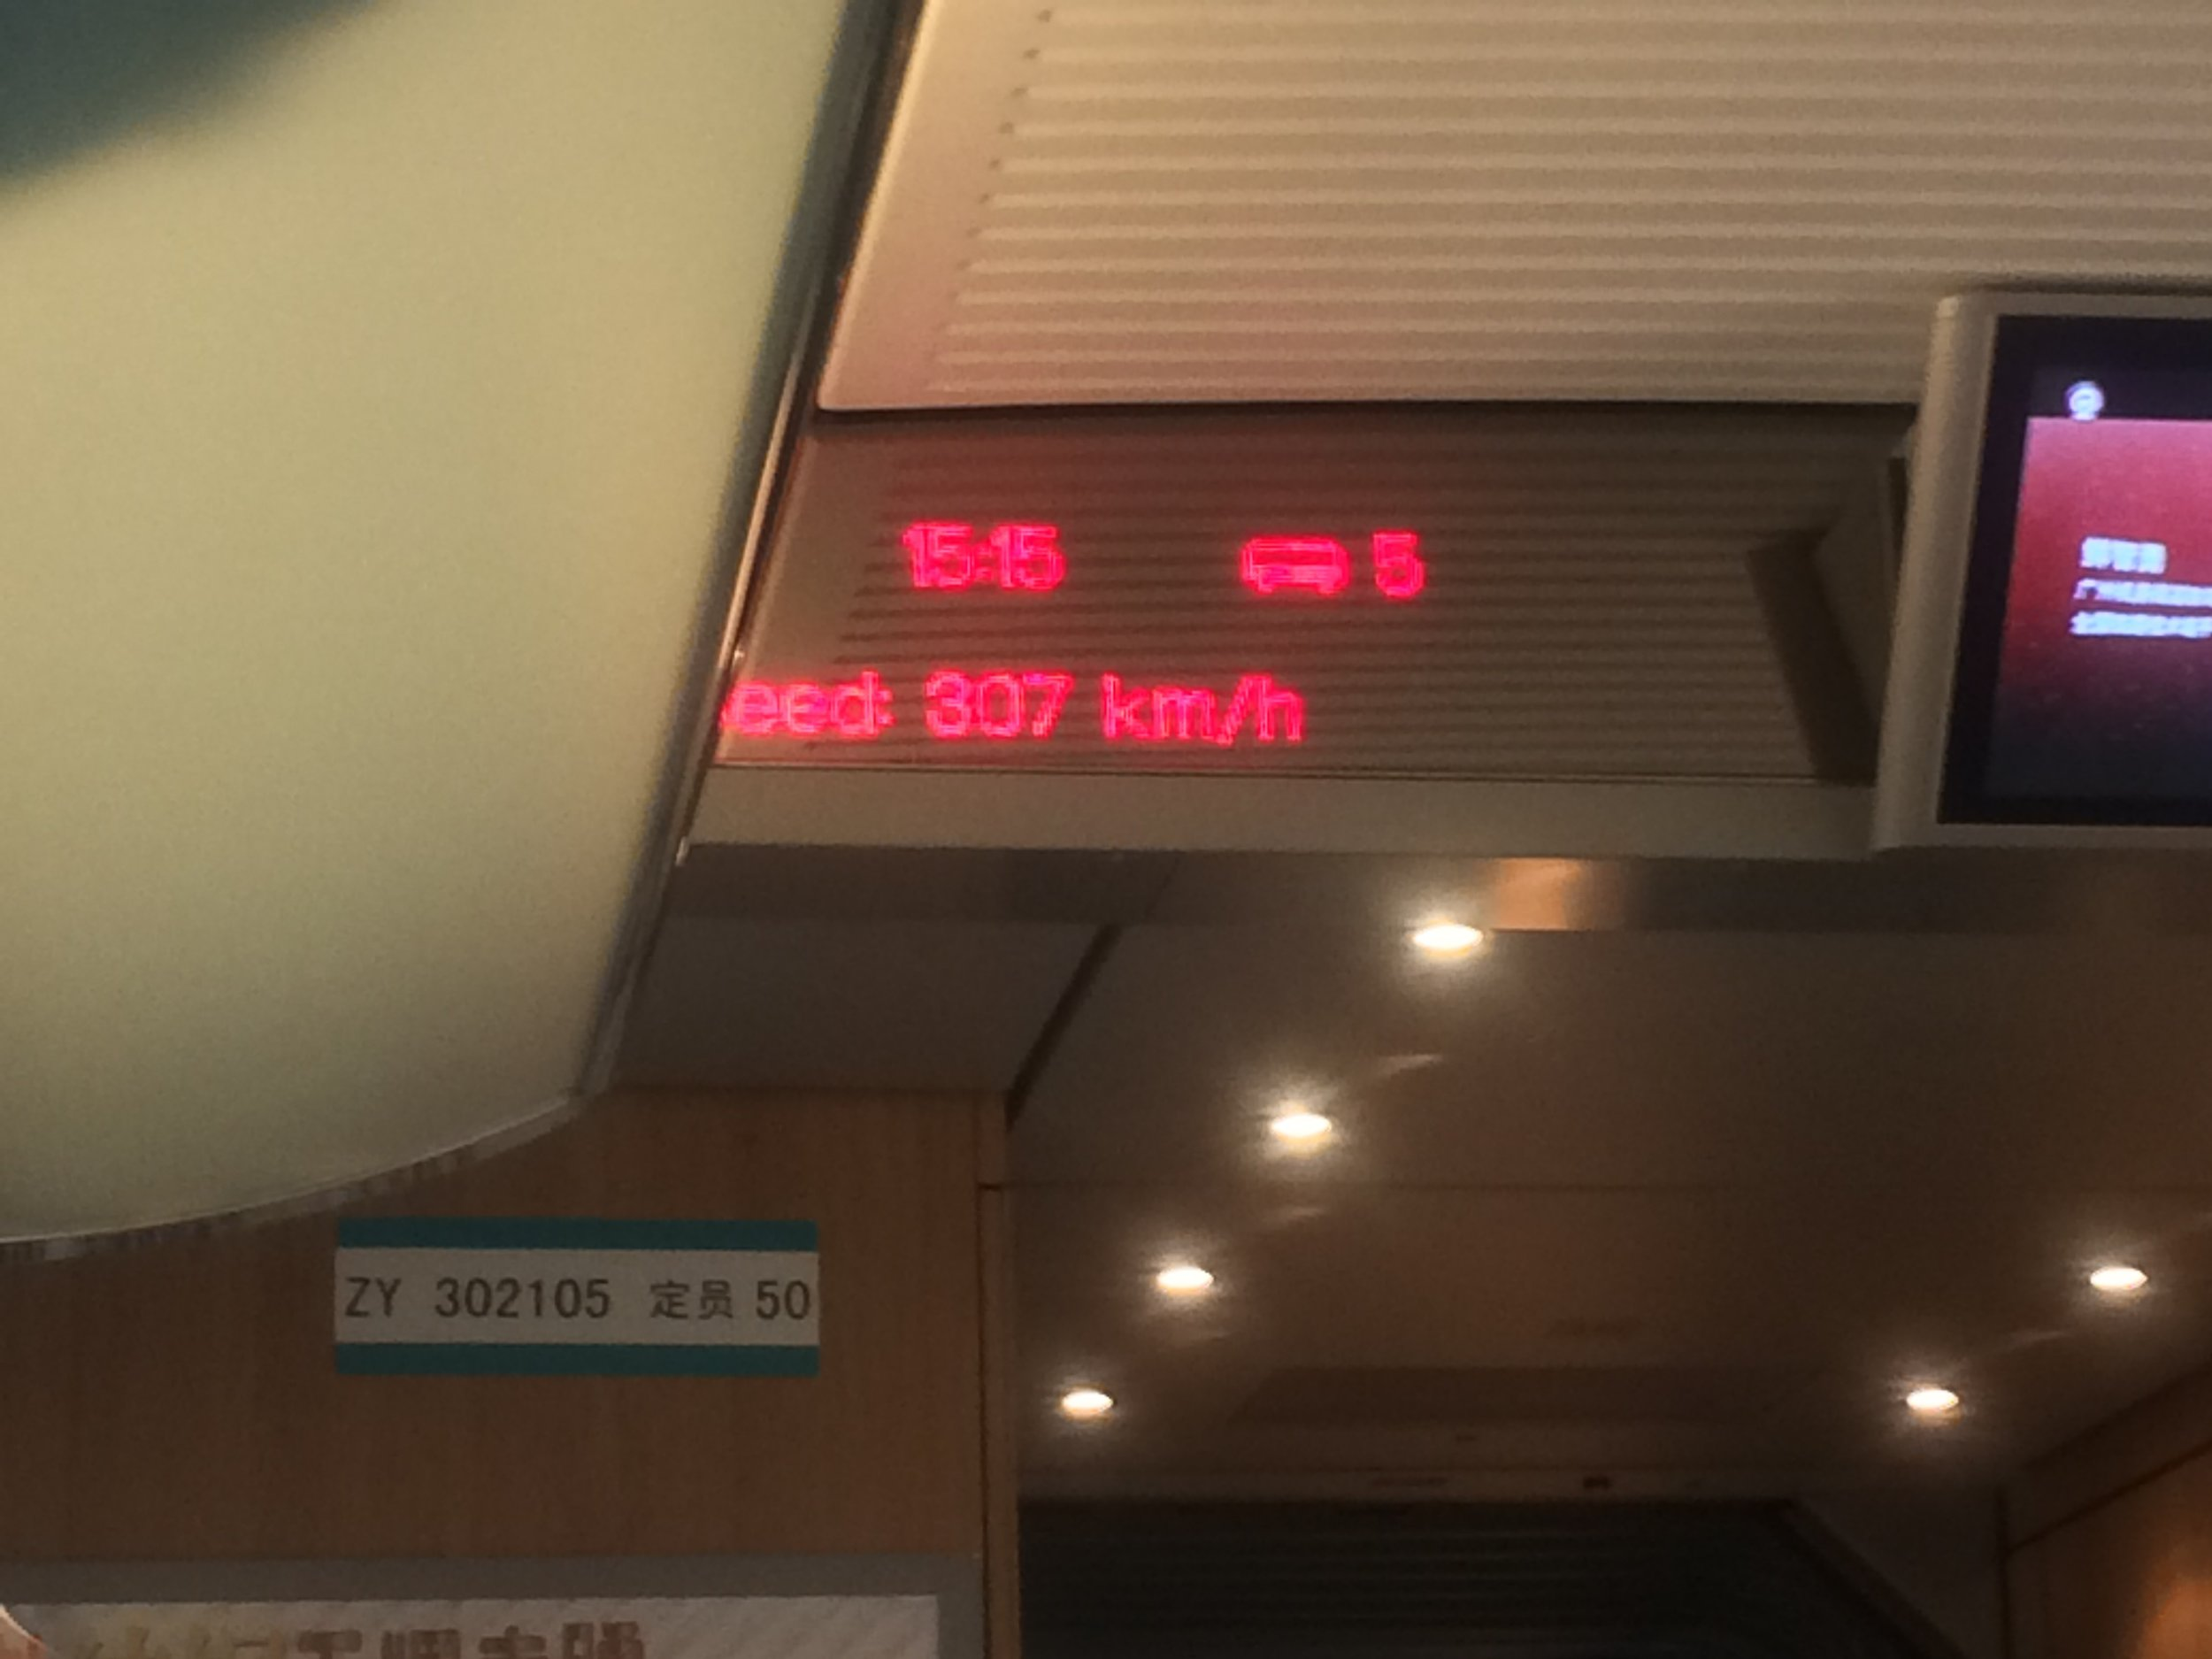 Beijing to Tianjin by bullet train - a great way to travel